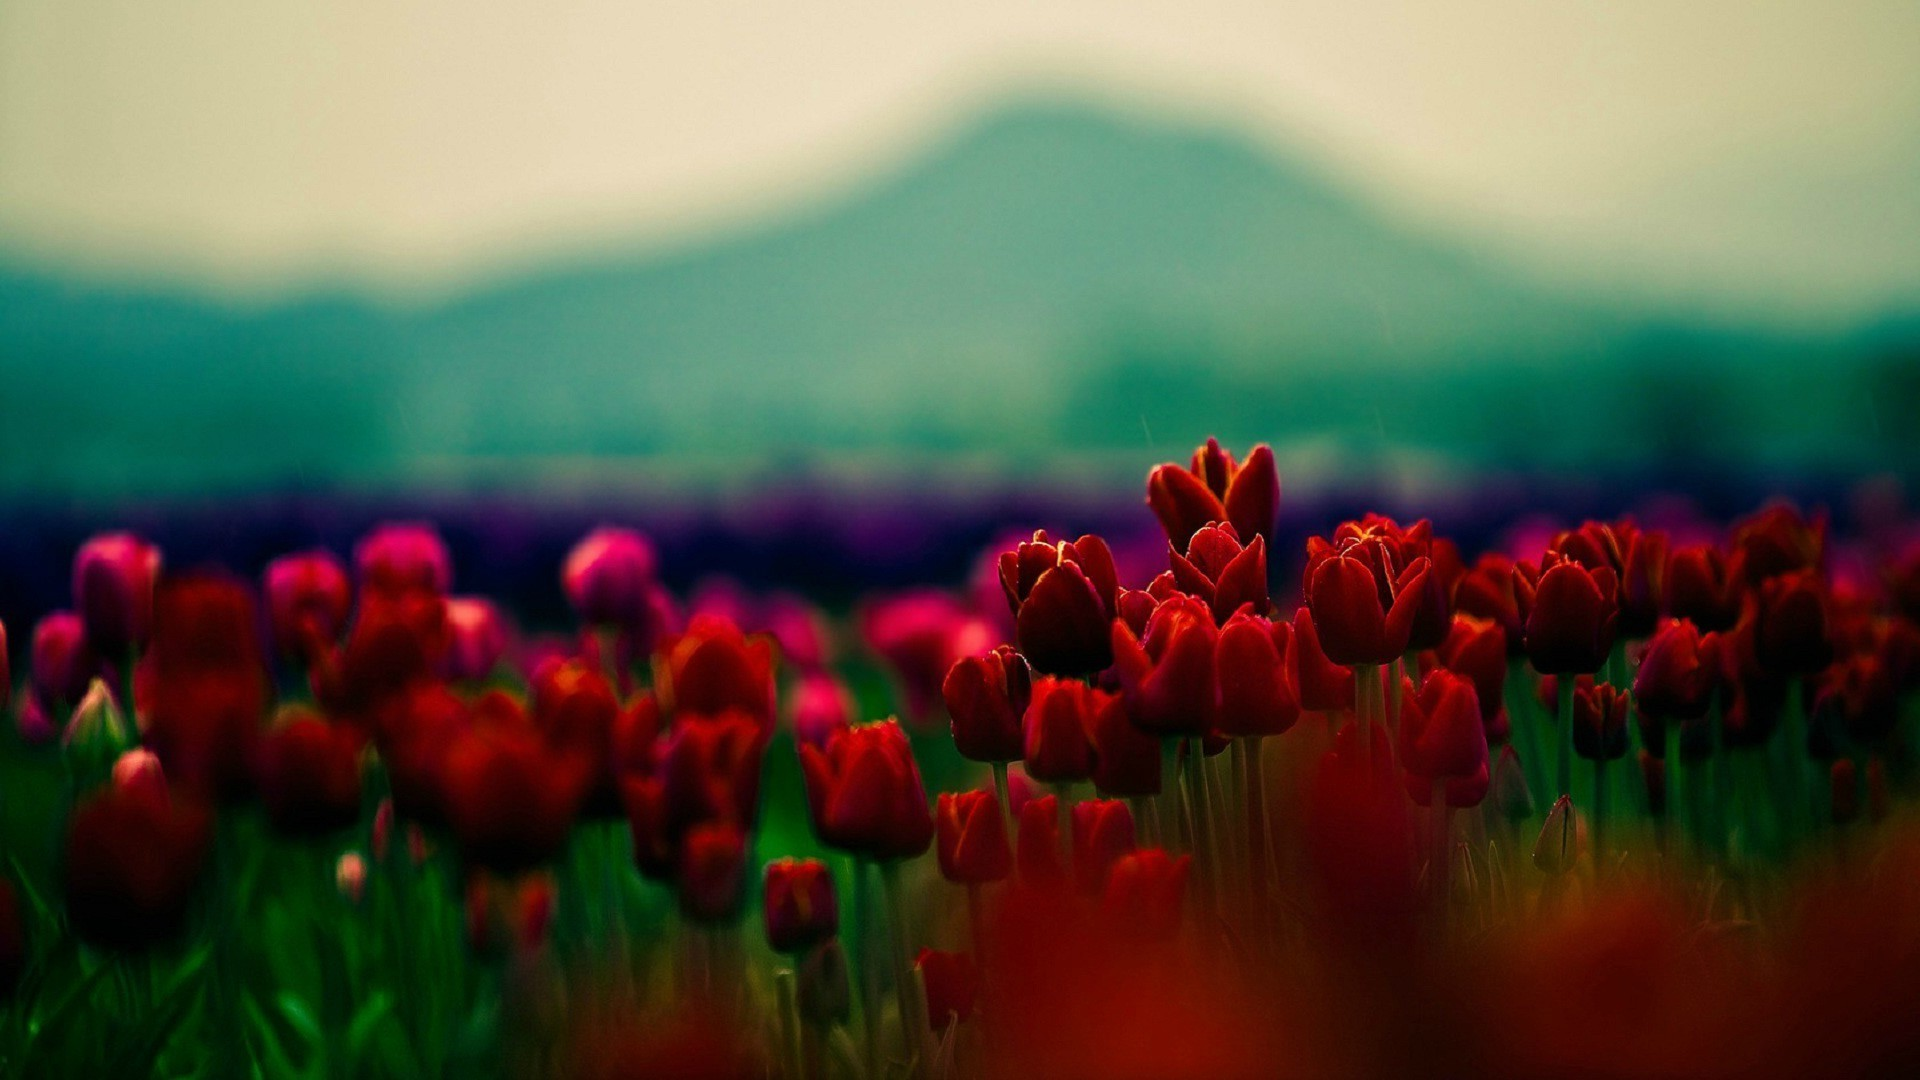 Plants Depth Of Field Tulips Flowers Red Flowers Wallpaper - Red Roses Facebook Cover , HD Wallpaper & Backgrounds